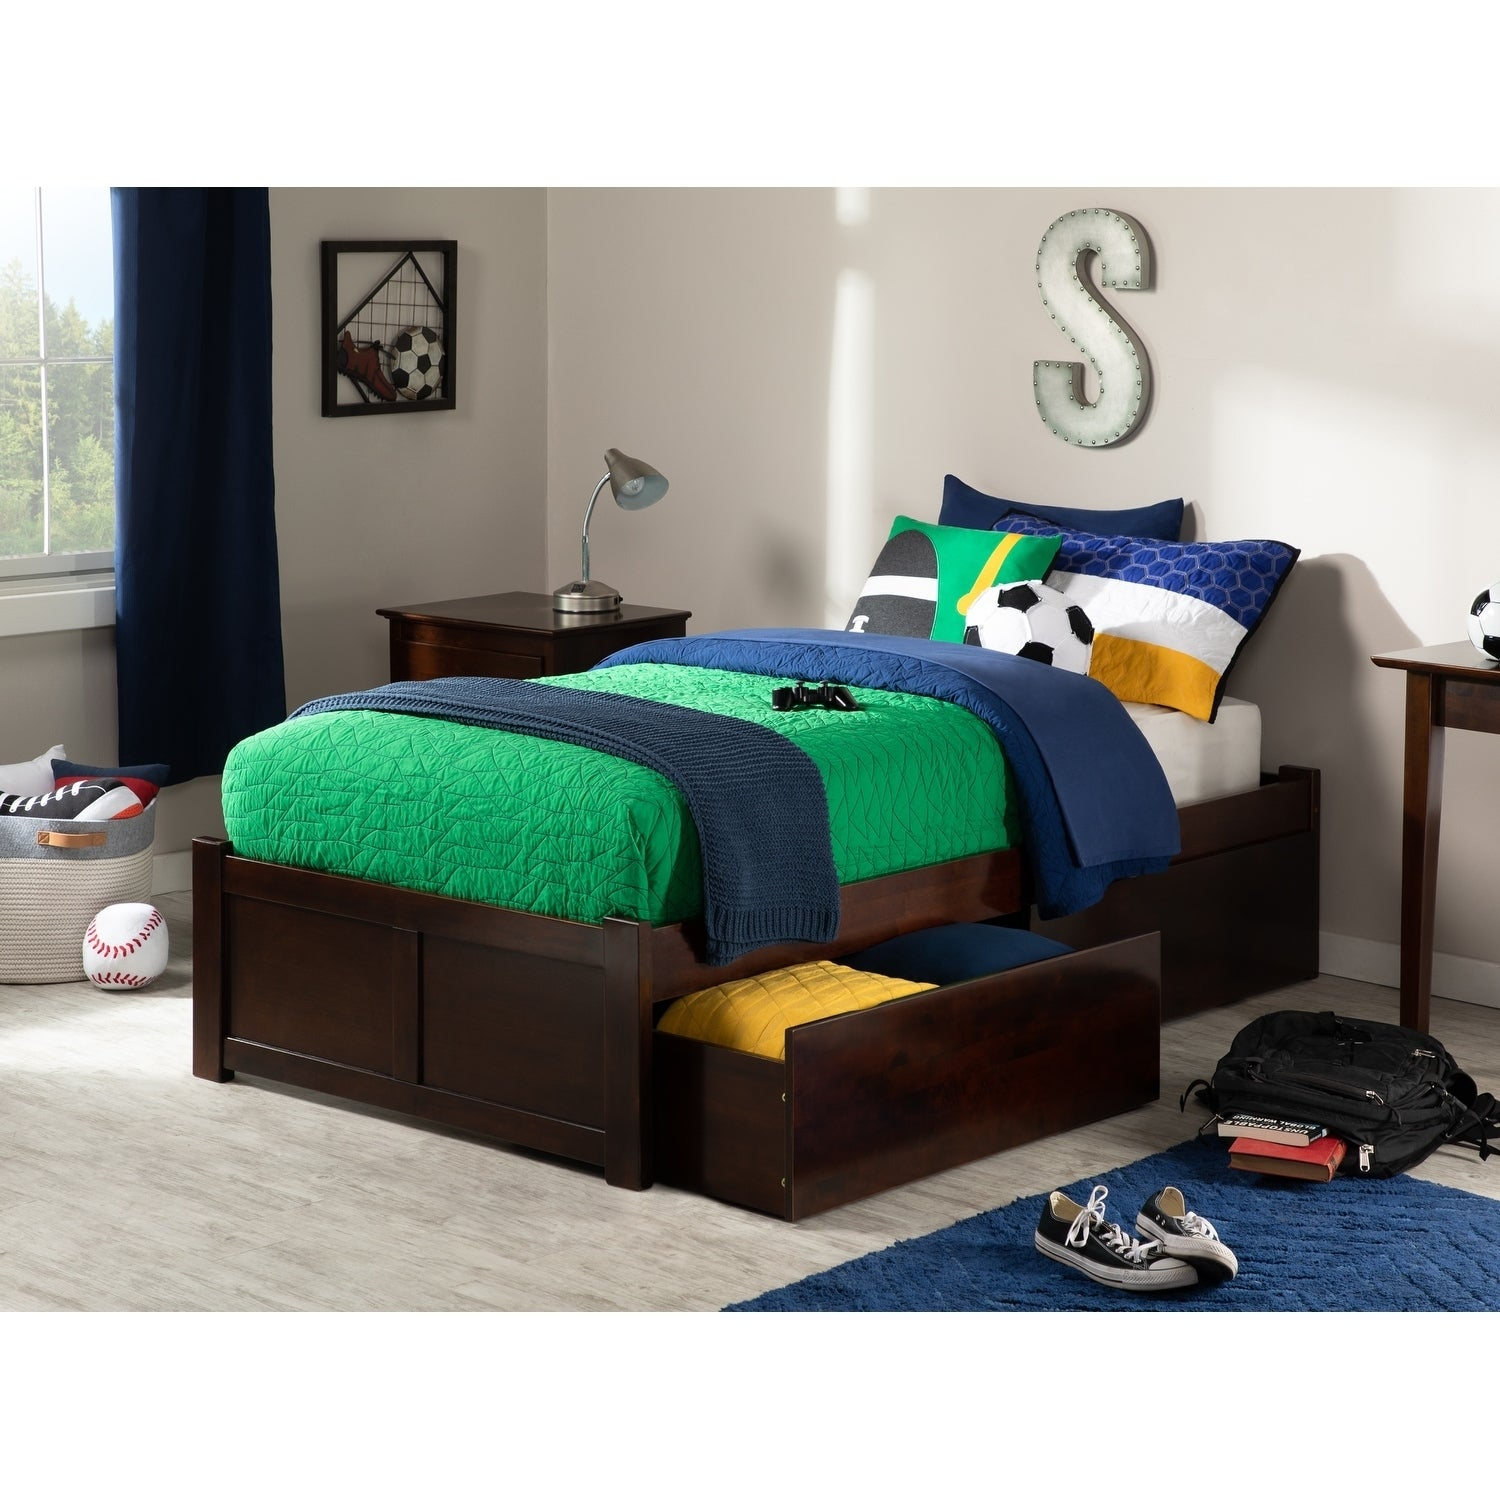 Concord Twin Xl Platform Bed With Flat Panel Foot Board And 2 Urban Bed Drawers In Walnut Overstock 12876395